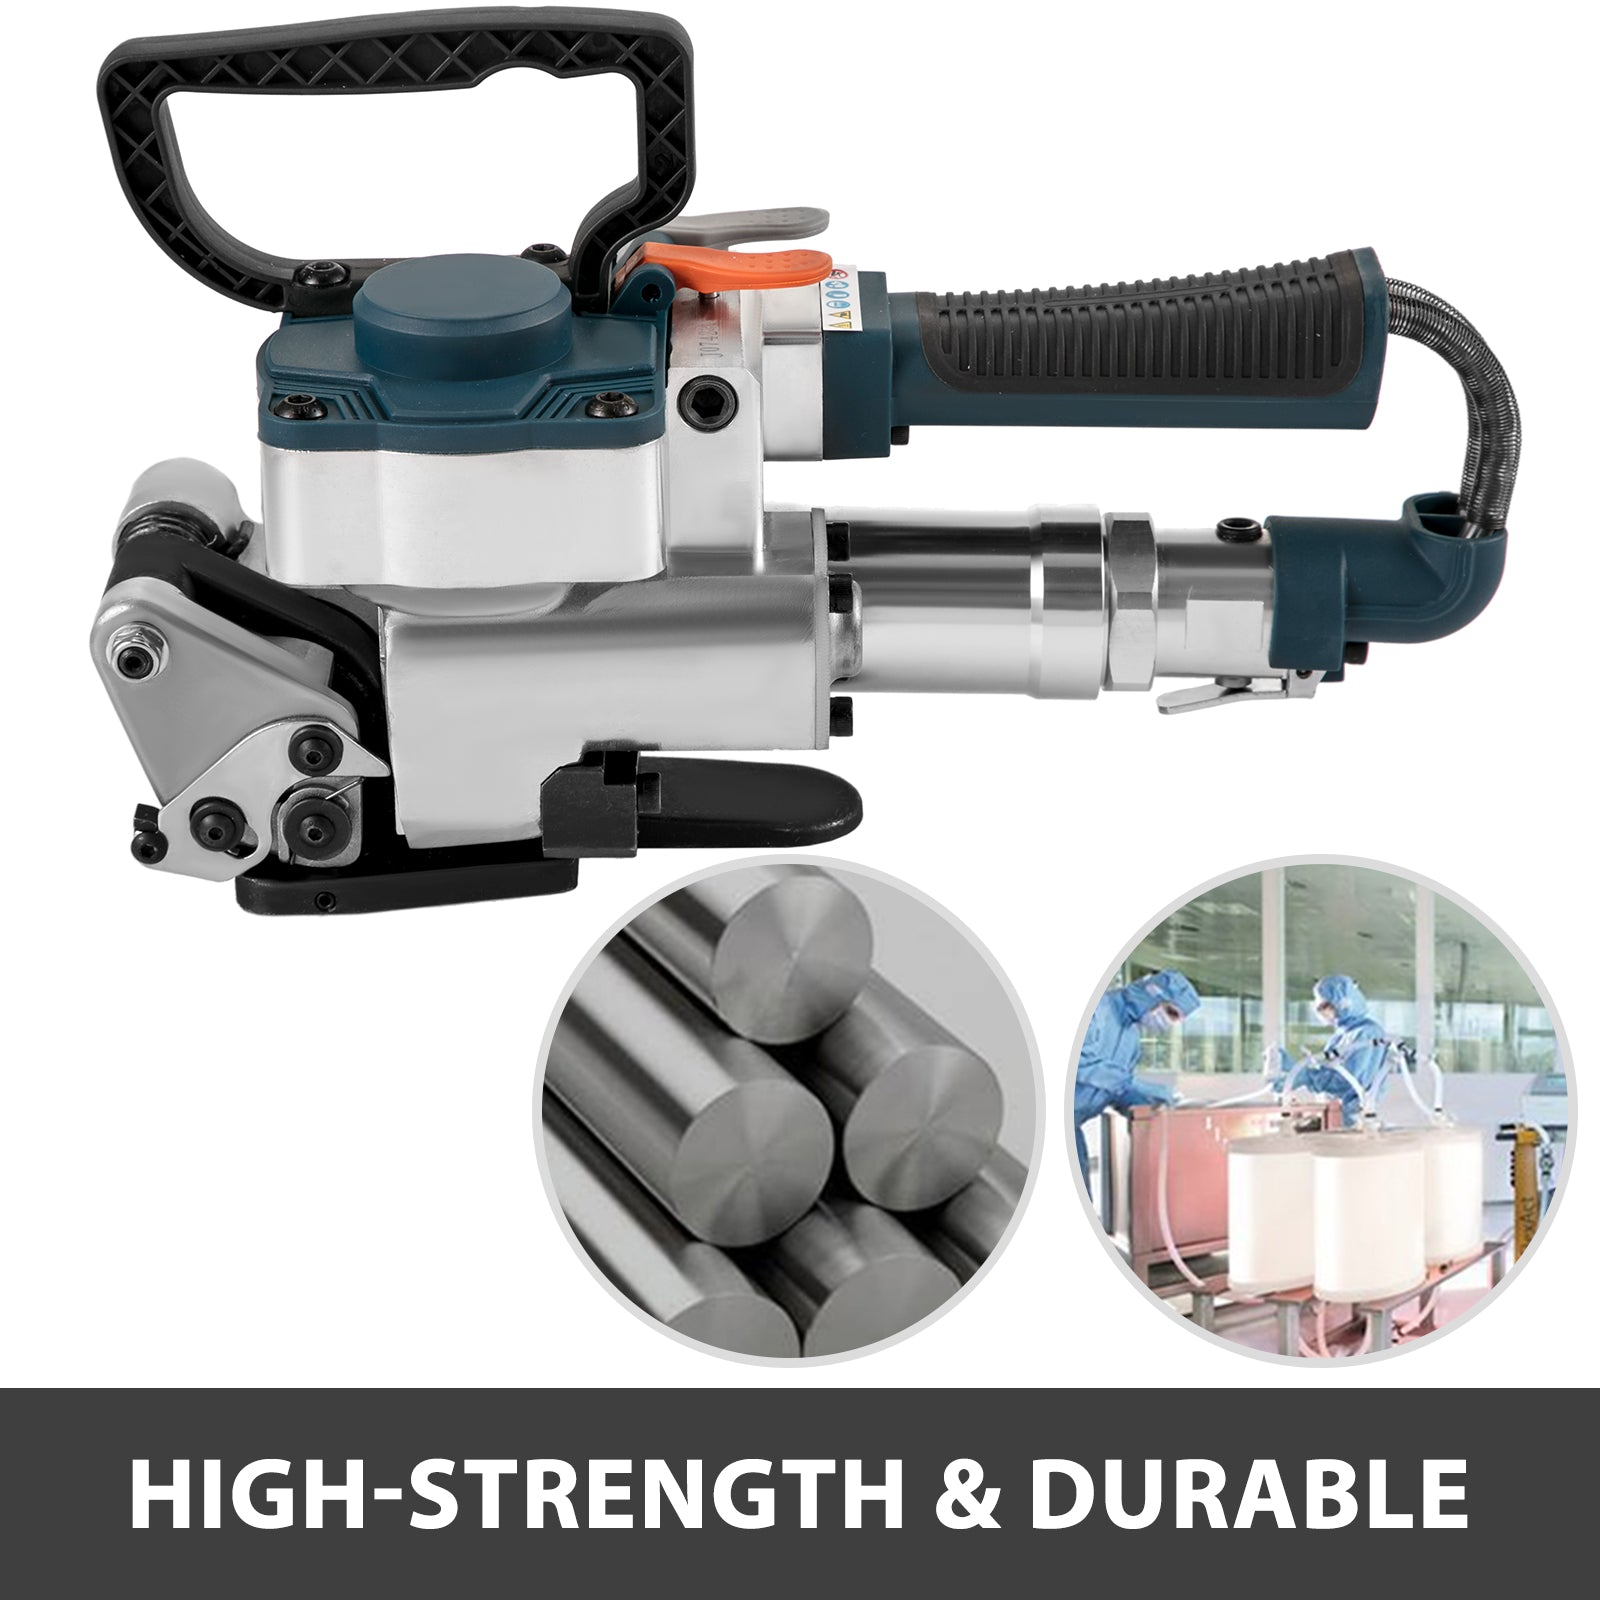 Pneumatic Strapping Tool Hand Held Strapping Machine 0.5-0.75in Pp/pet Belt B19